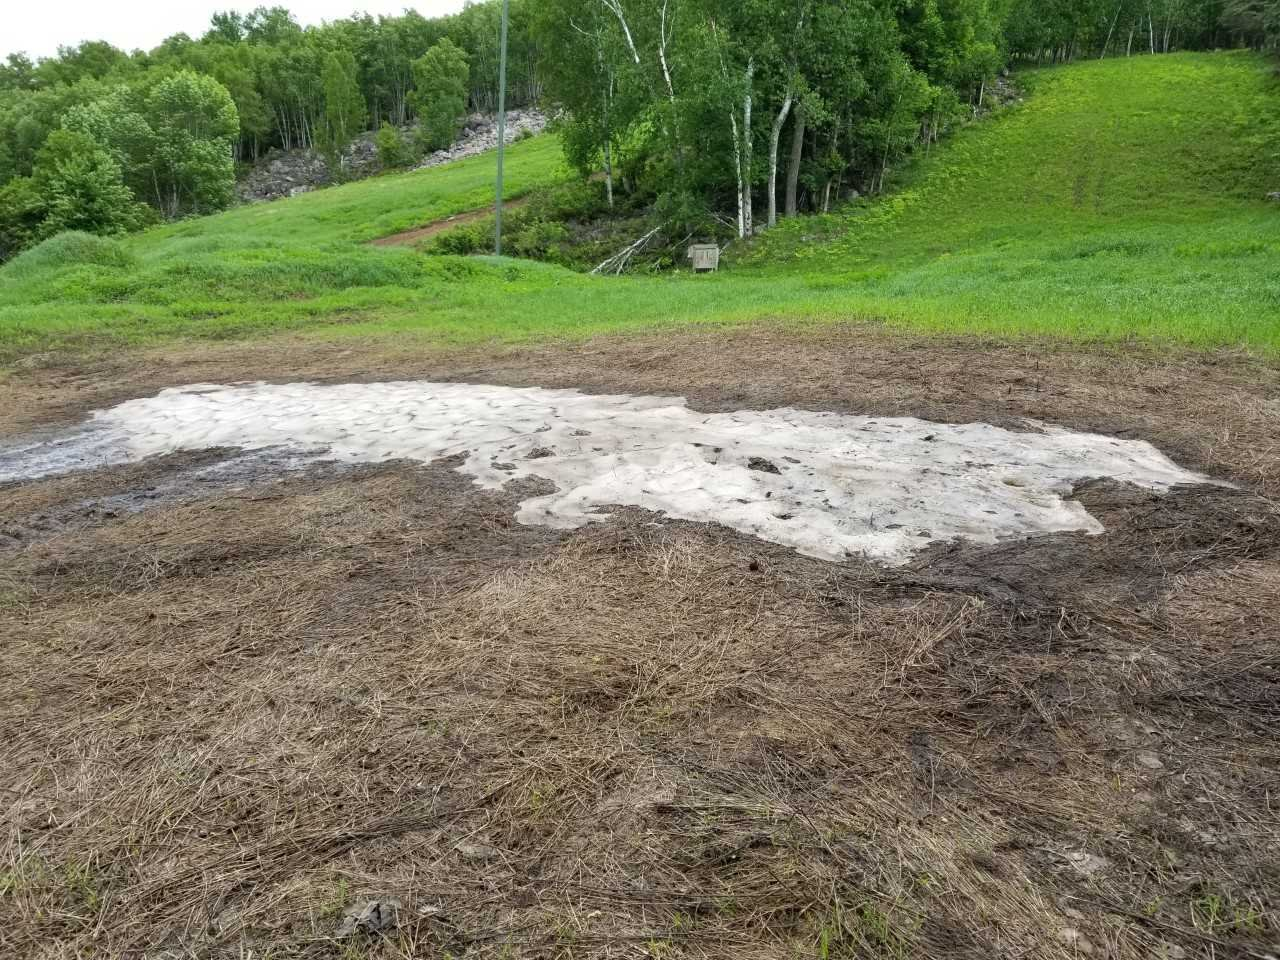 Remaining snow on June 3rd